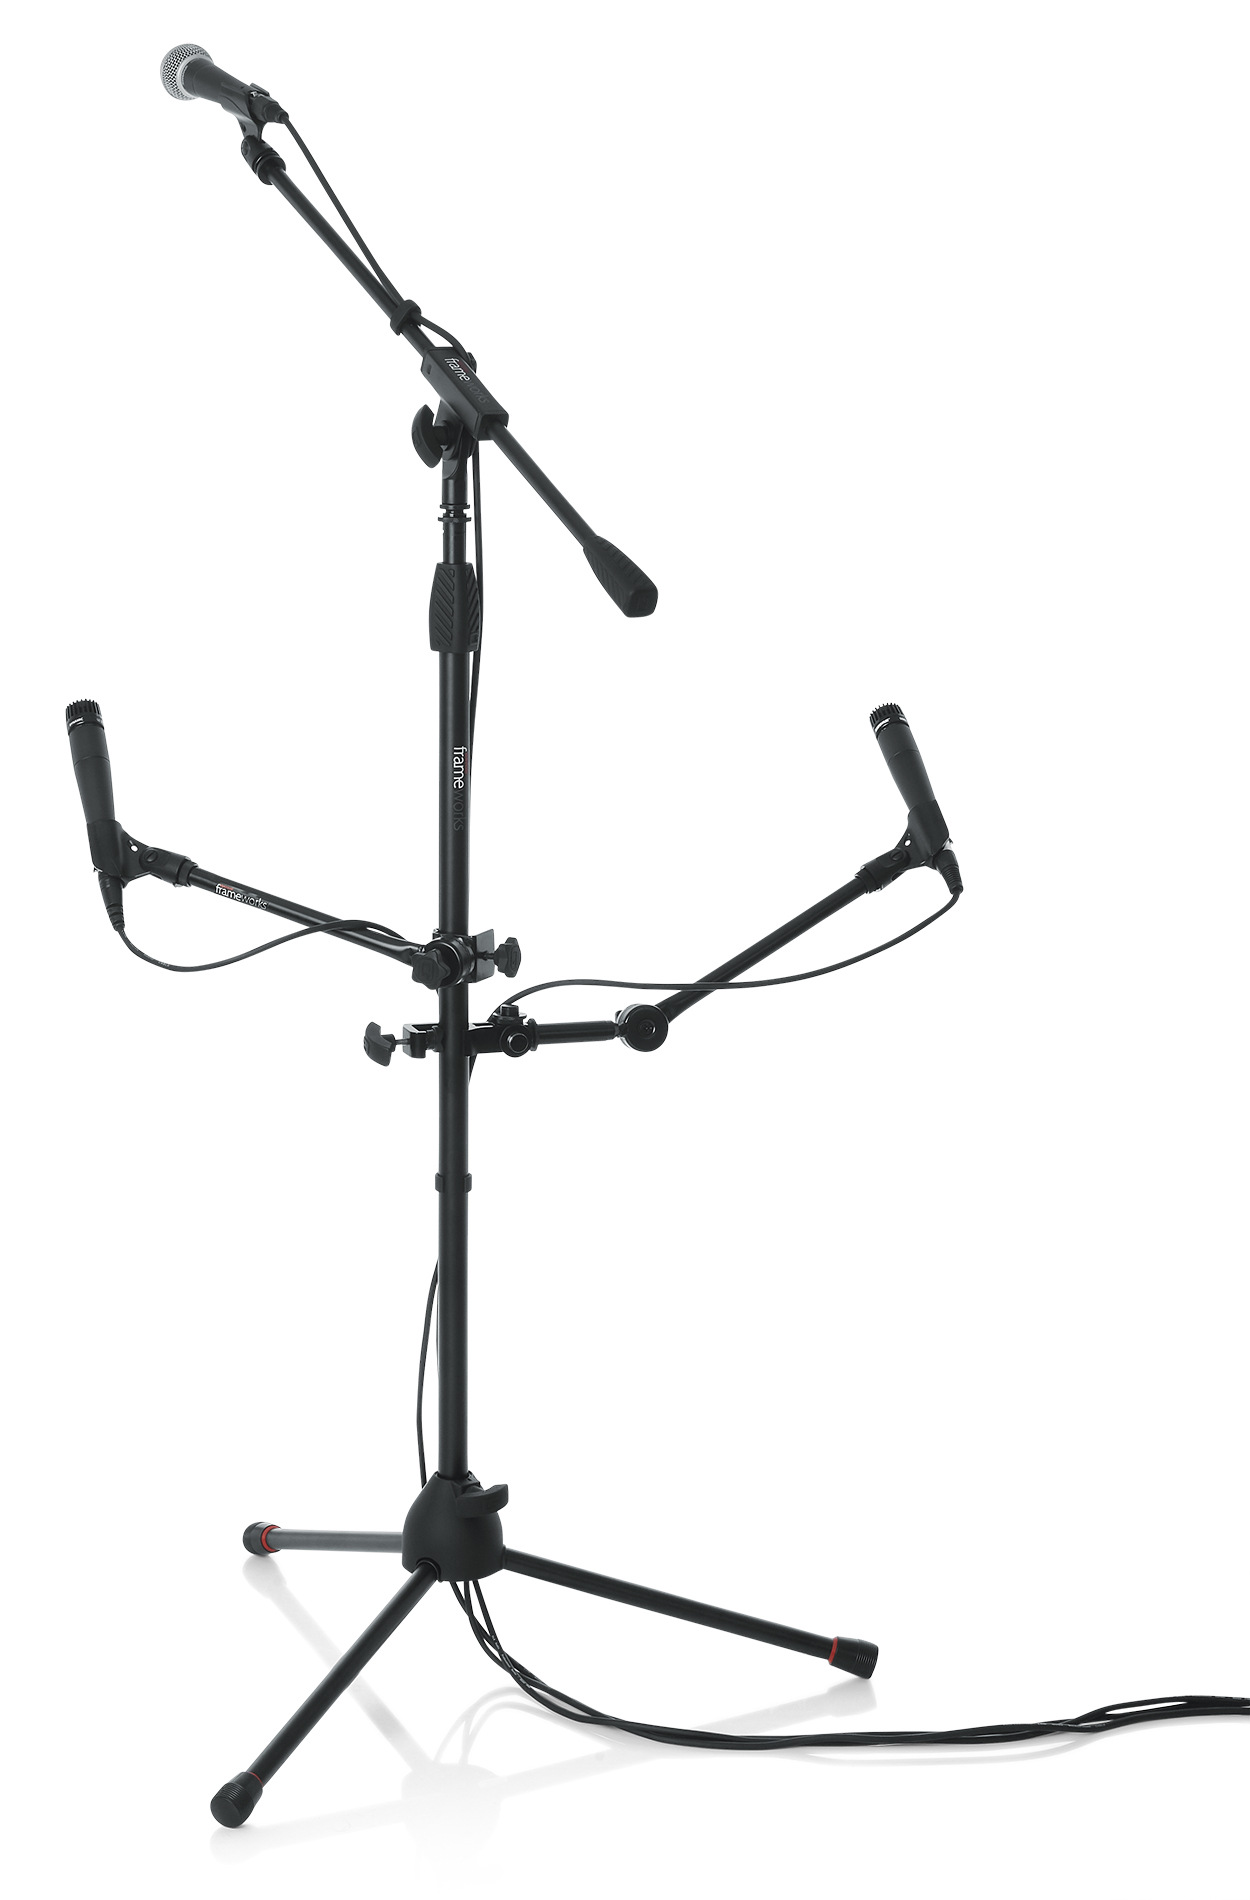 Four Accessory Microphone Stand Mount Gfw Mic Multimount